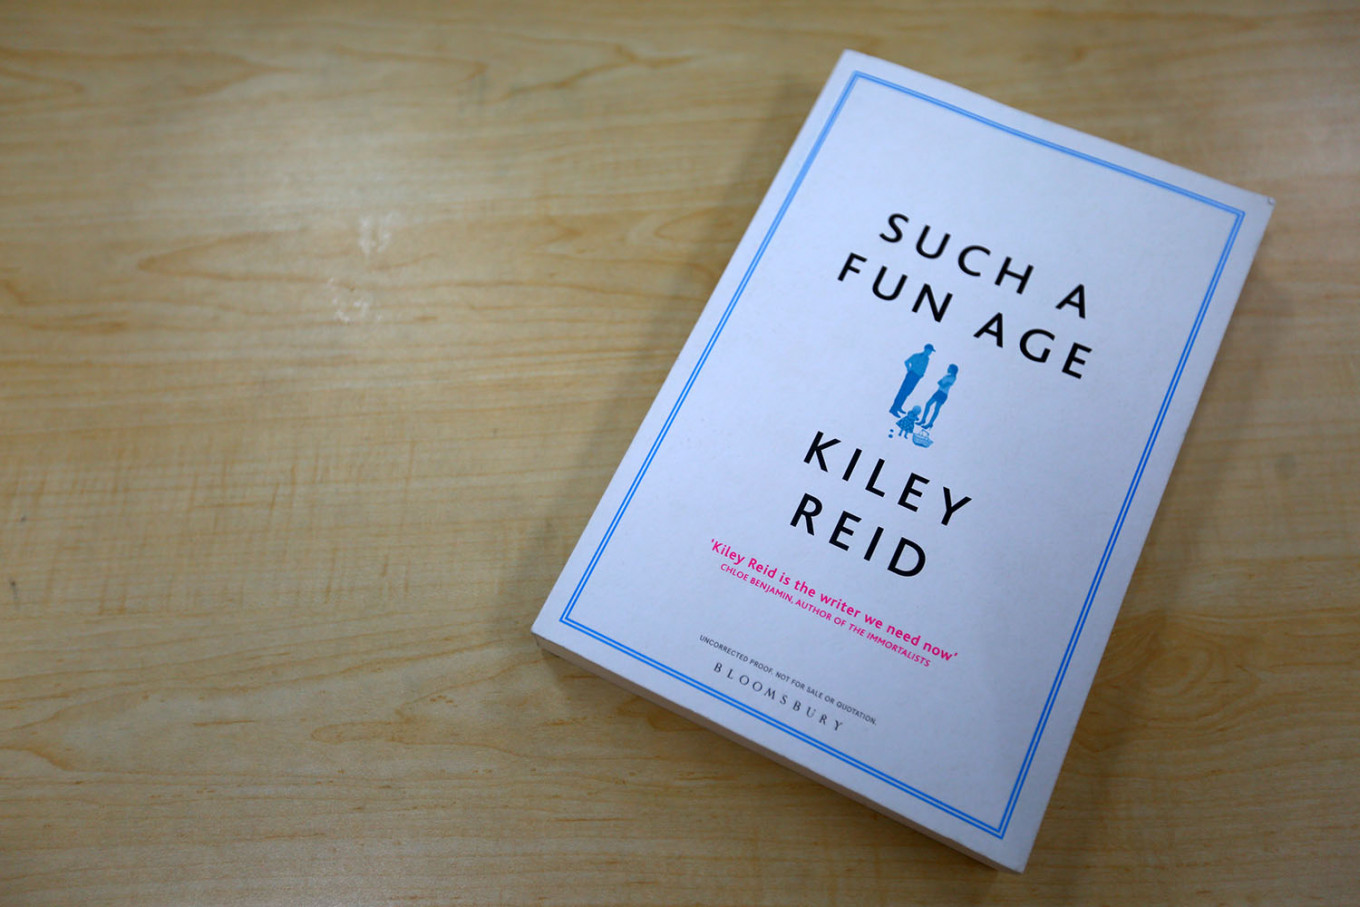 'Such A Fun Age': Eye-opening, contemporary fun read